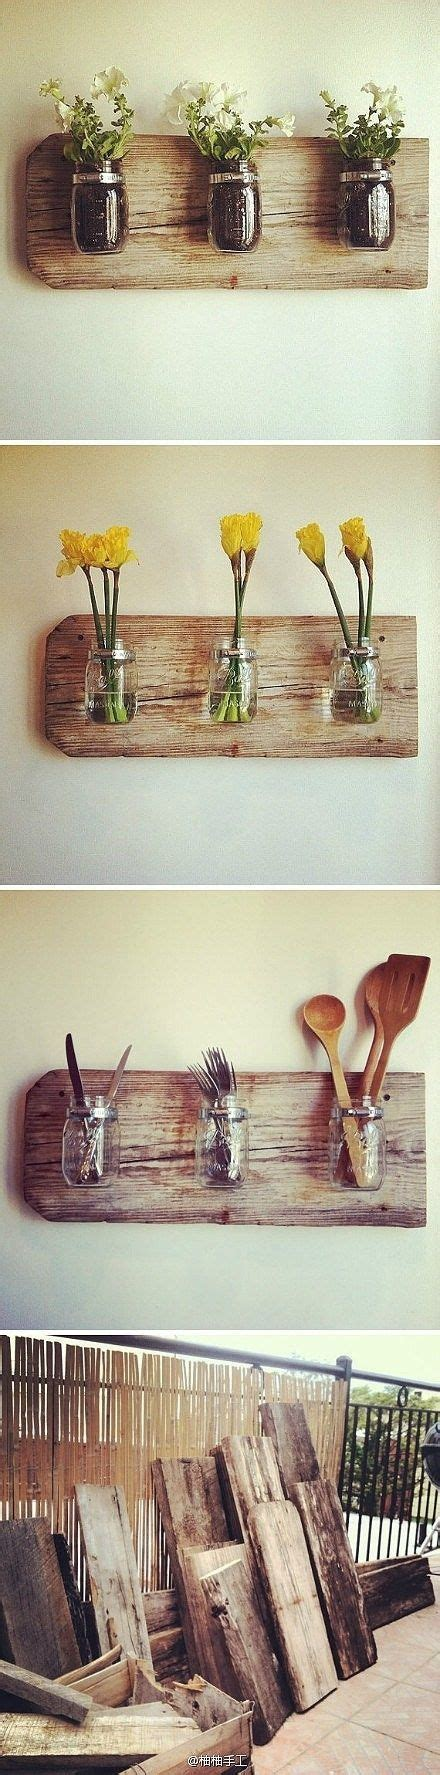 10 top diy decor ideas to spruce up your home interiors 35 amazing diy home decor projects to spruce up your space